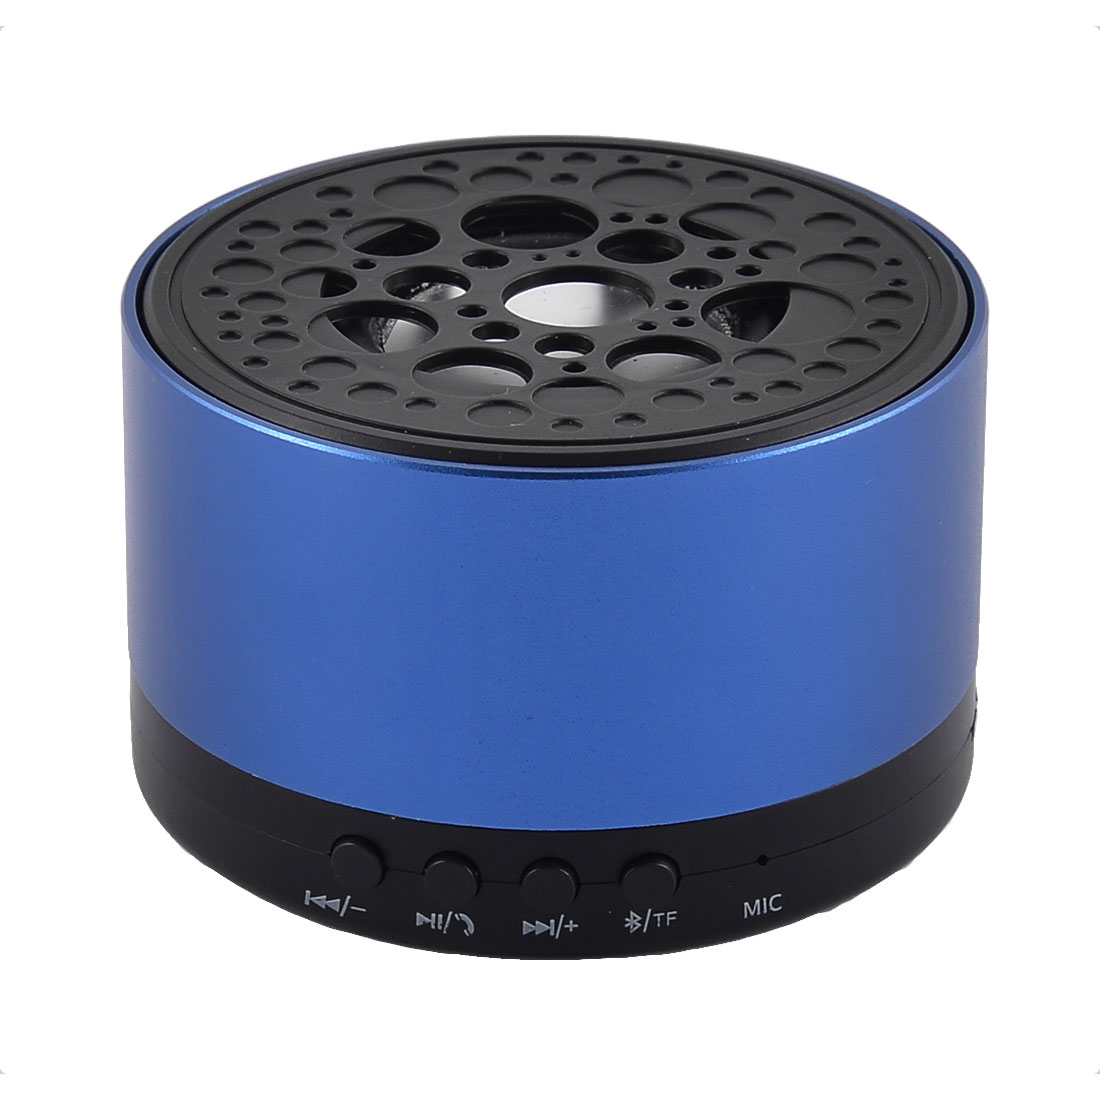 Portable Handsfree Water Resistant Dustproof Wireless bluetooth Speaker Loudspeaker Blue